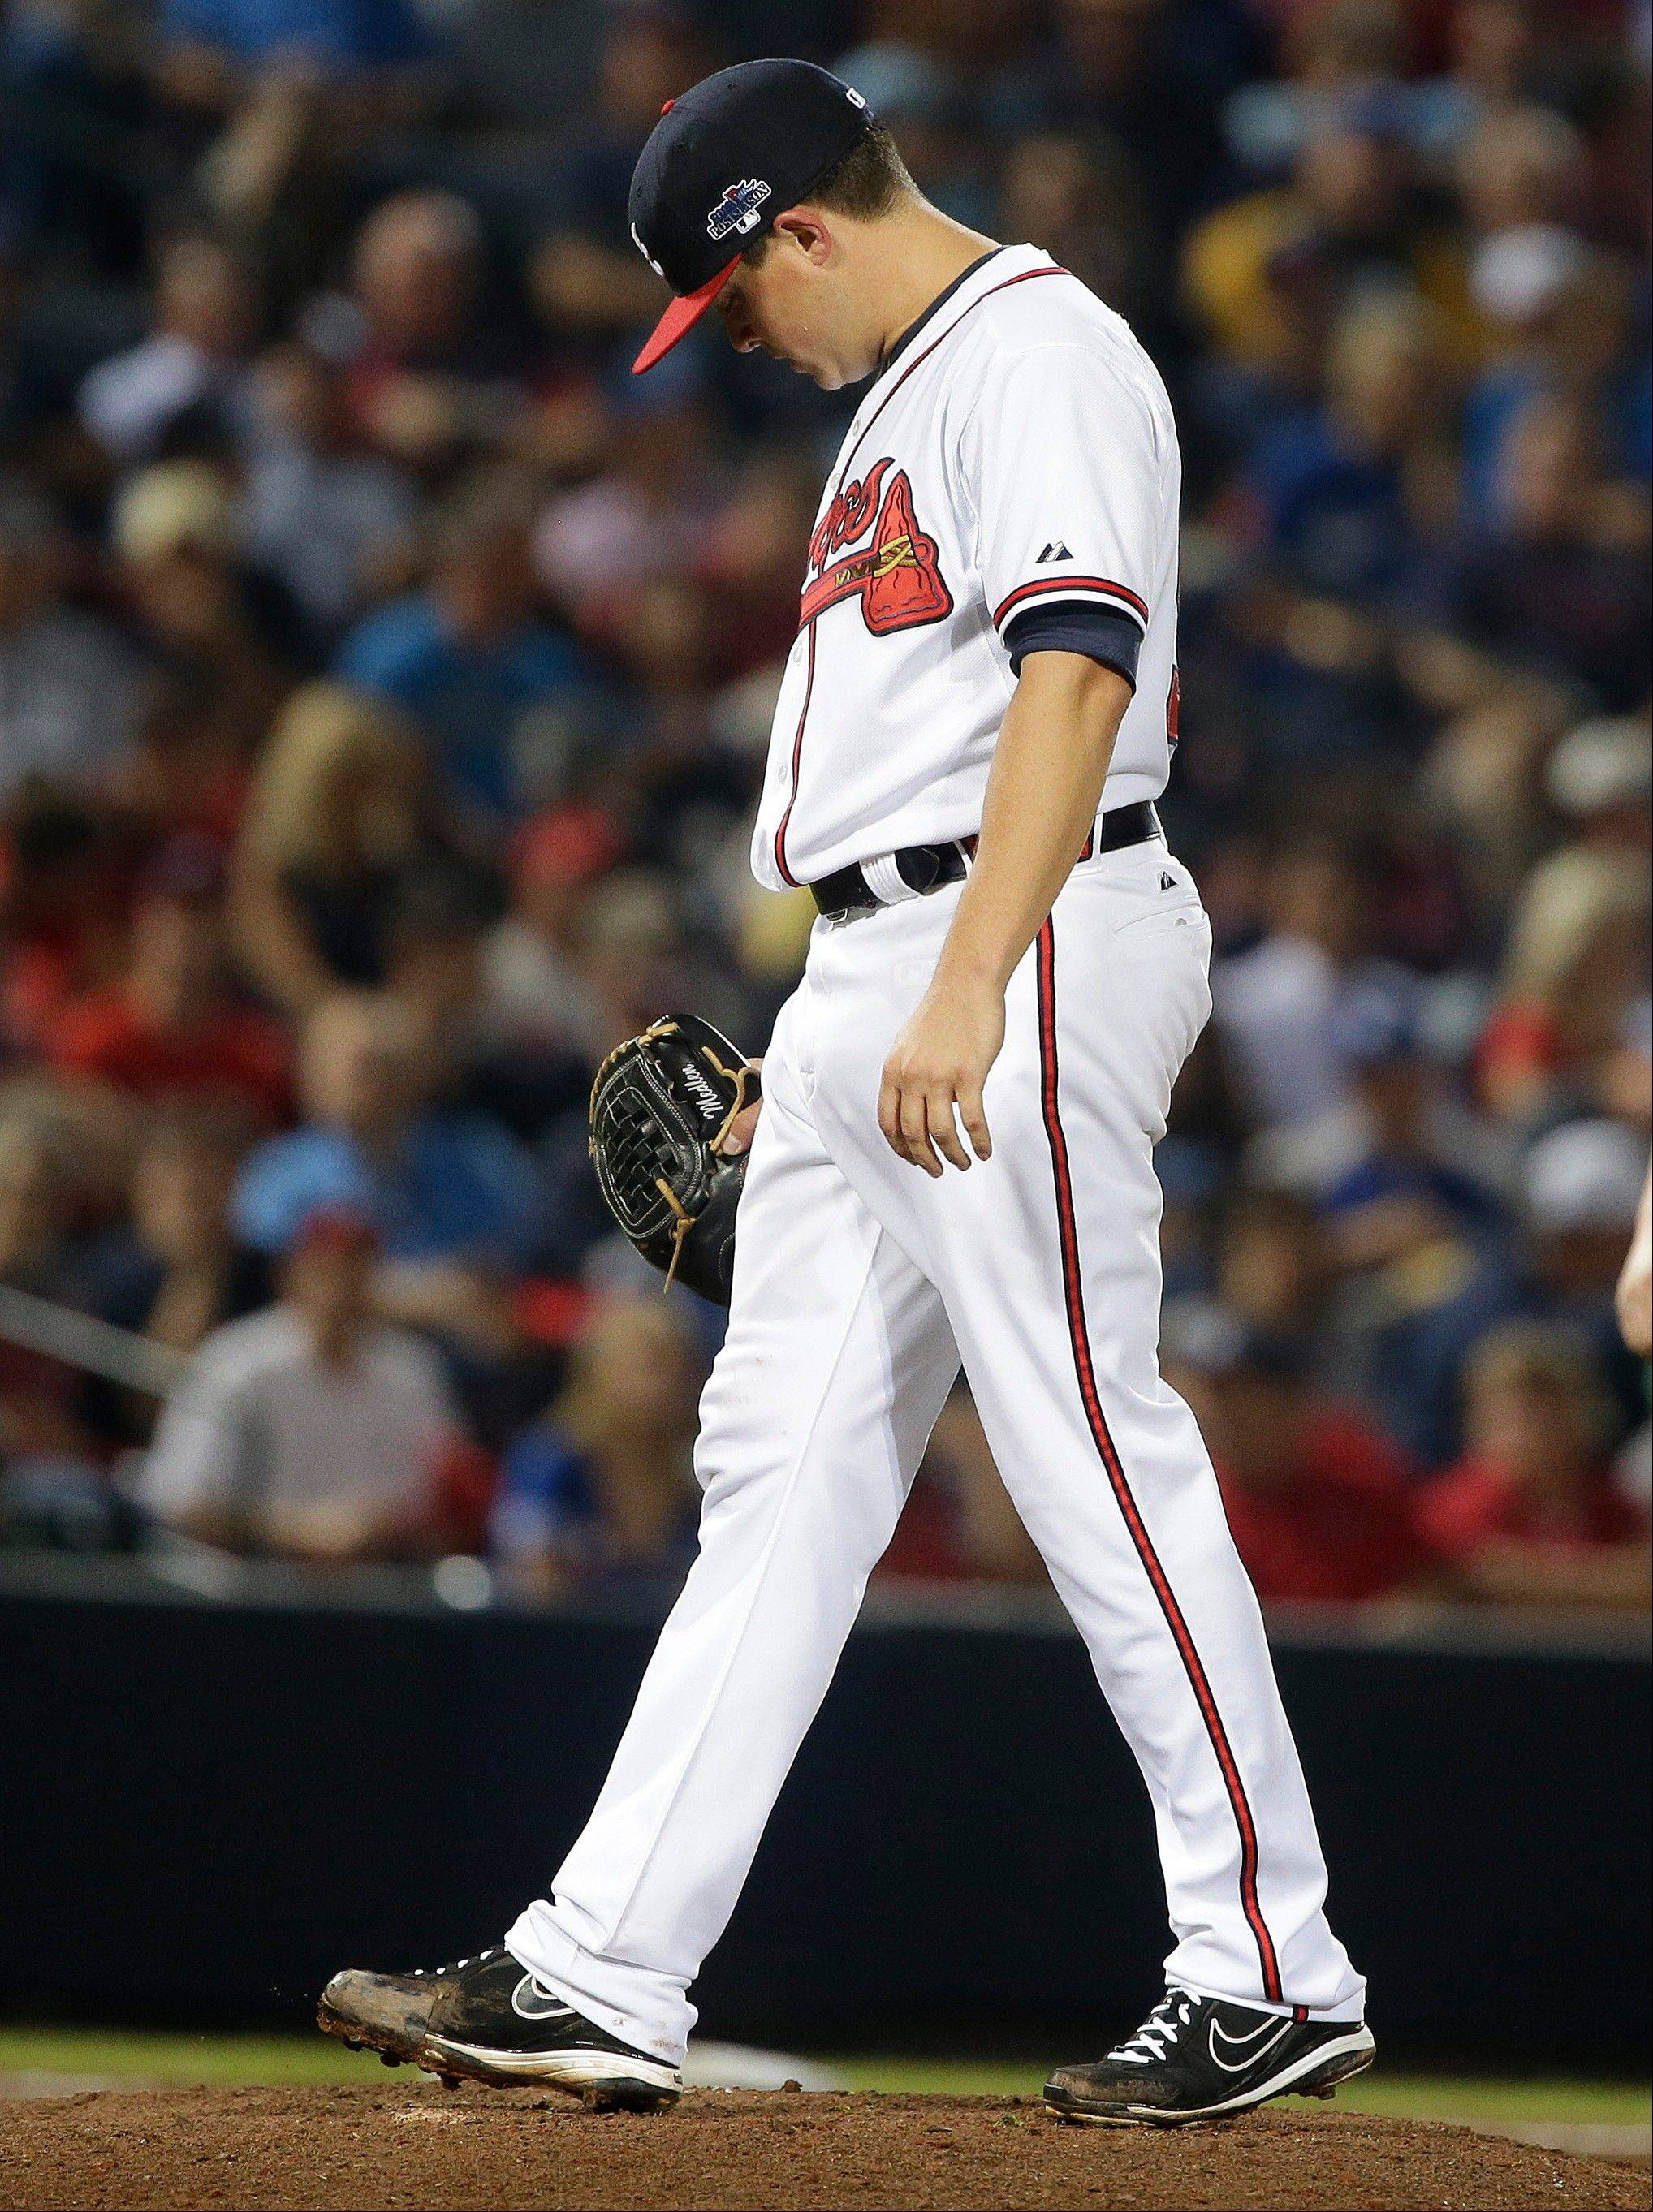 Atlanta Braves starting pitcher Kris Medlen walks to Atlanta Braves manager Fredi Gonzalez as he is relieved in the fifth inning of Game 1 of the National League Division Series against the Los Angeles Dodgers, Thursday, Oct. 3, 2013, in Atlanta.